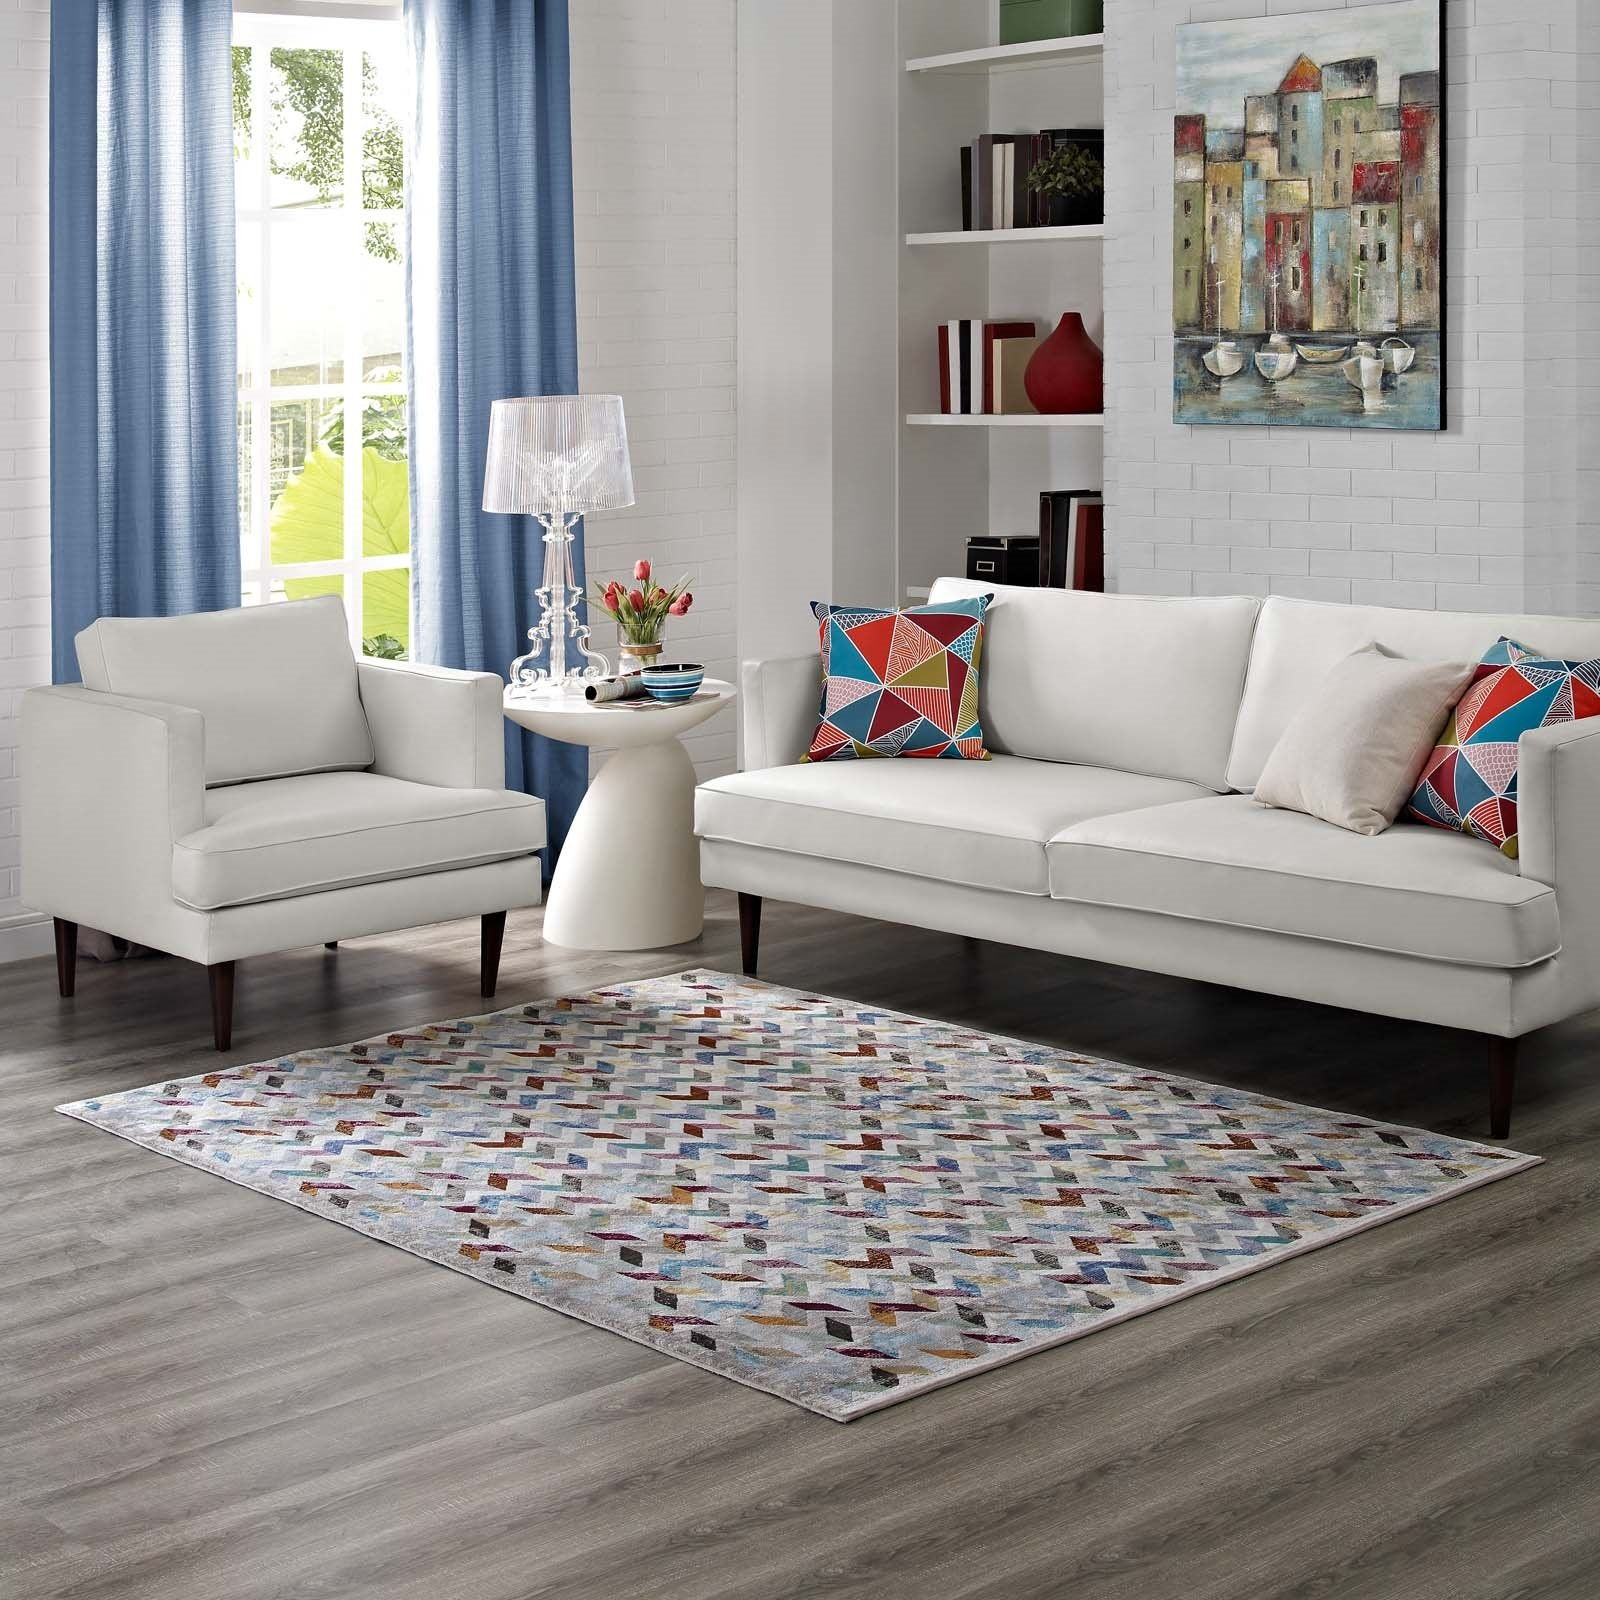 Gemma Chevron Mosaic 5x8 Area Rug in Multicolored Product Image